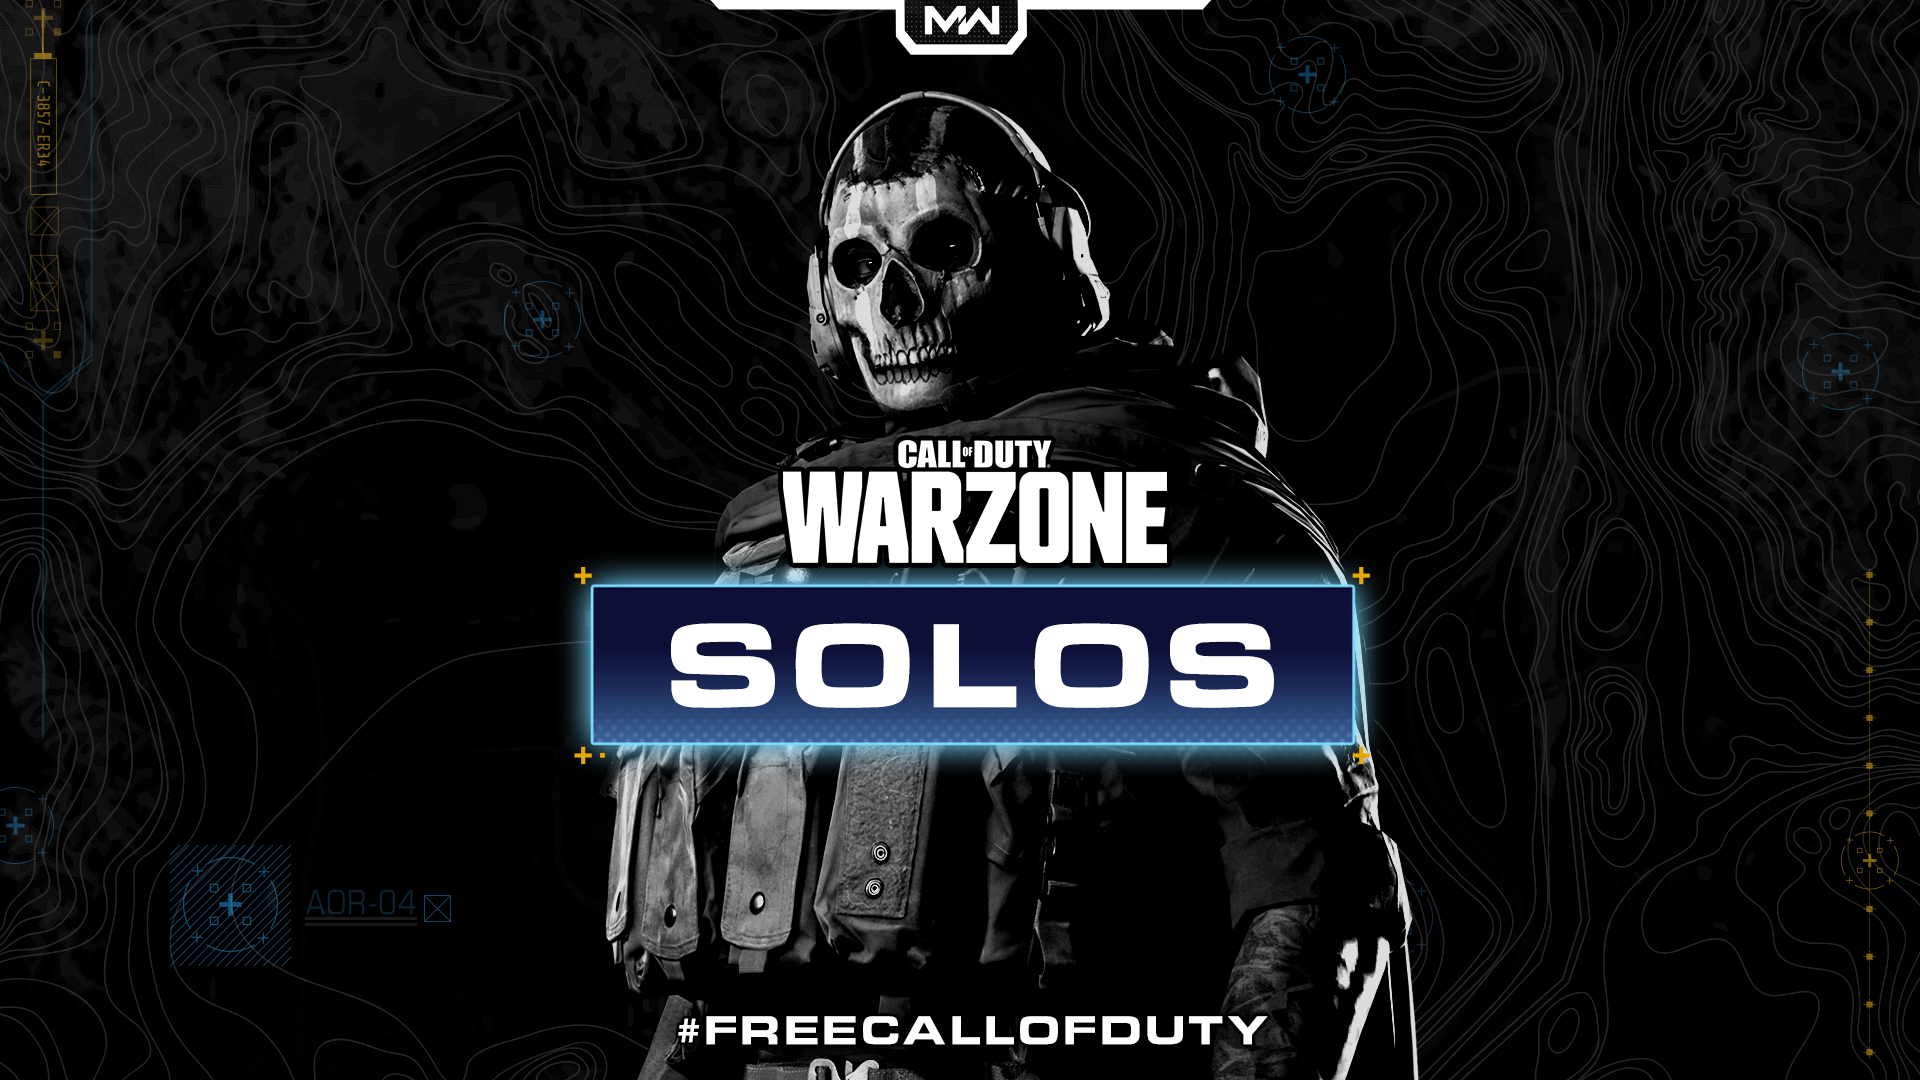 Ghost in Call of Duty: Warzone.